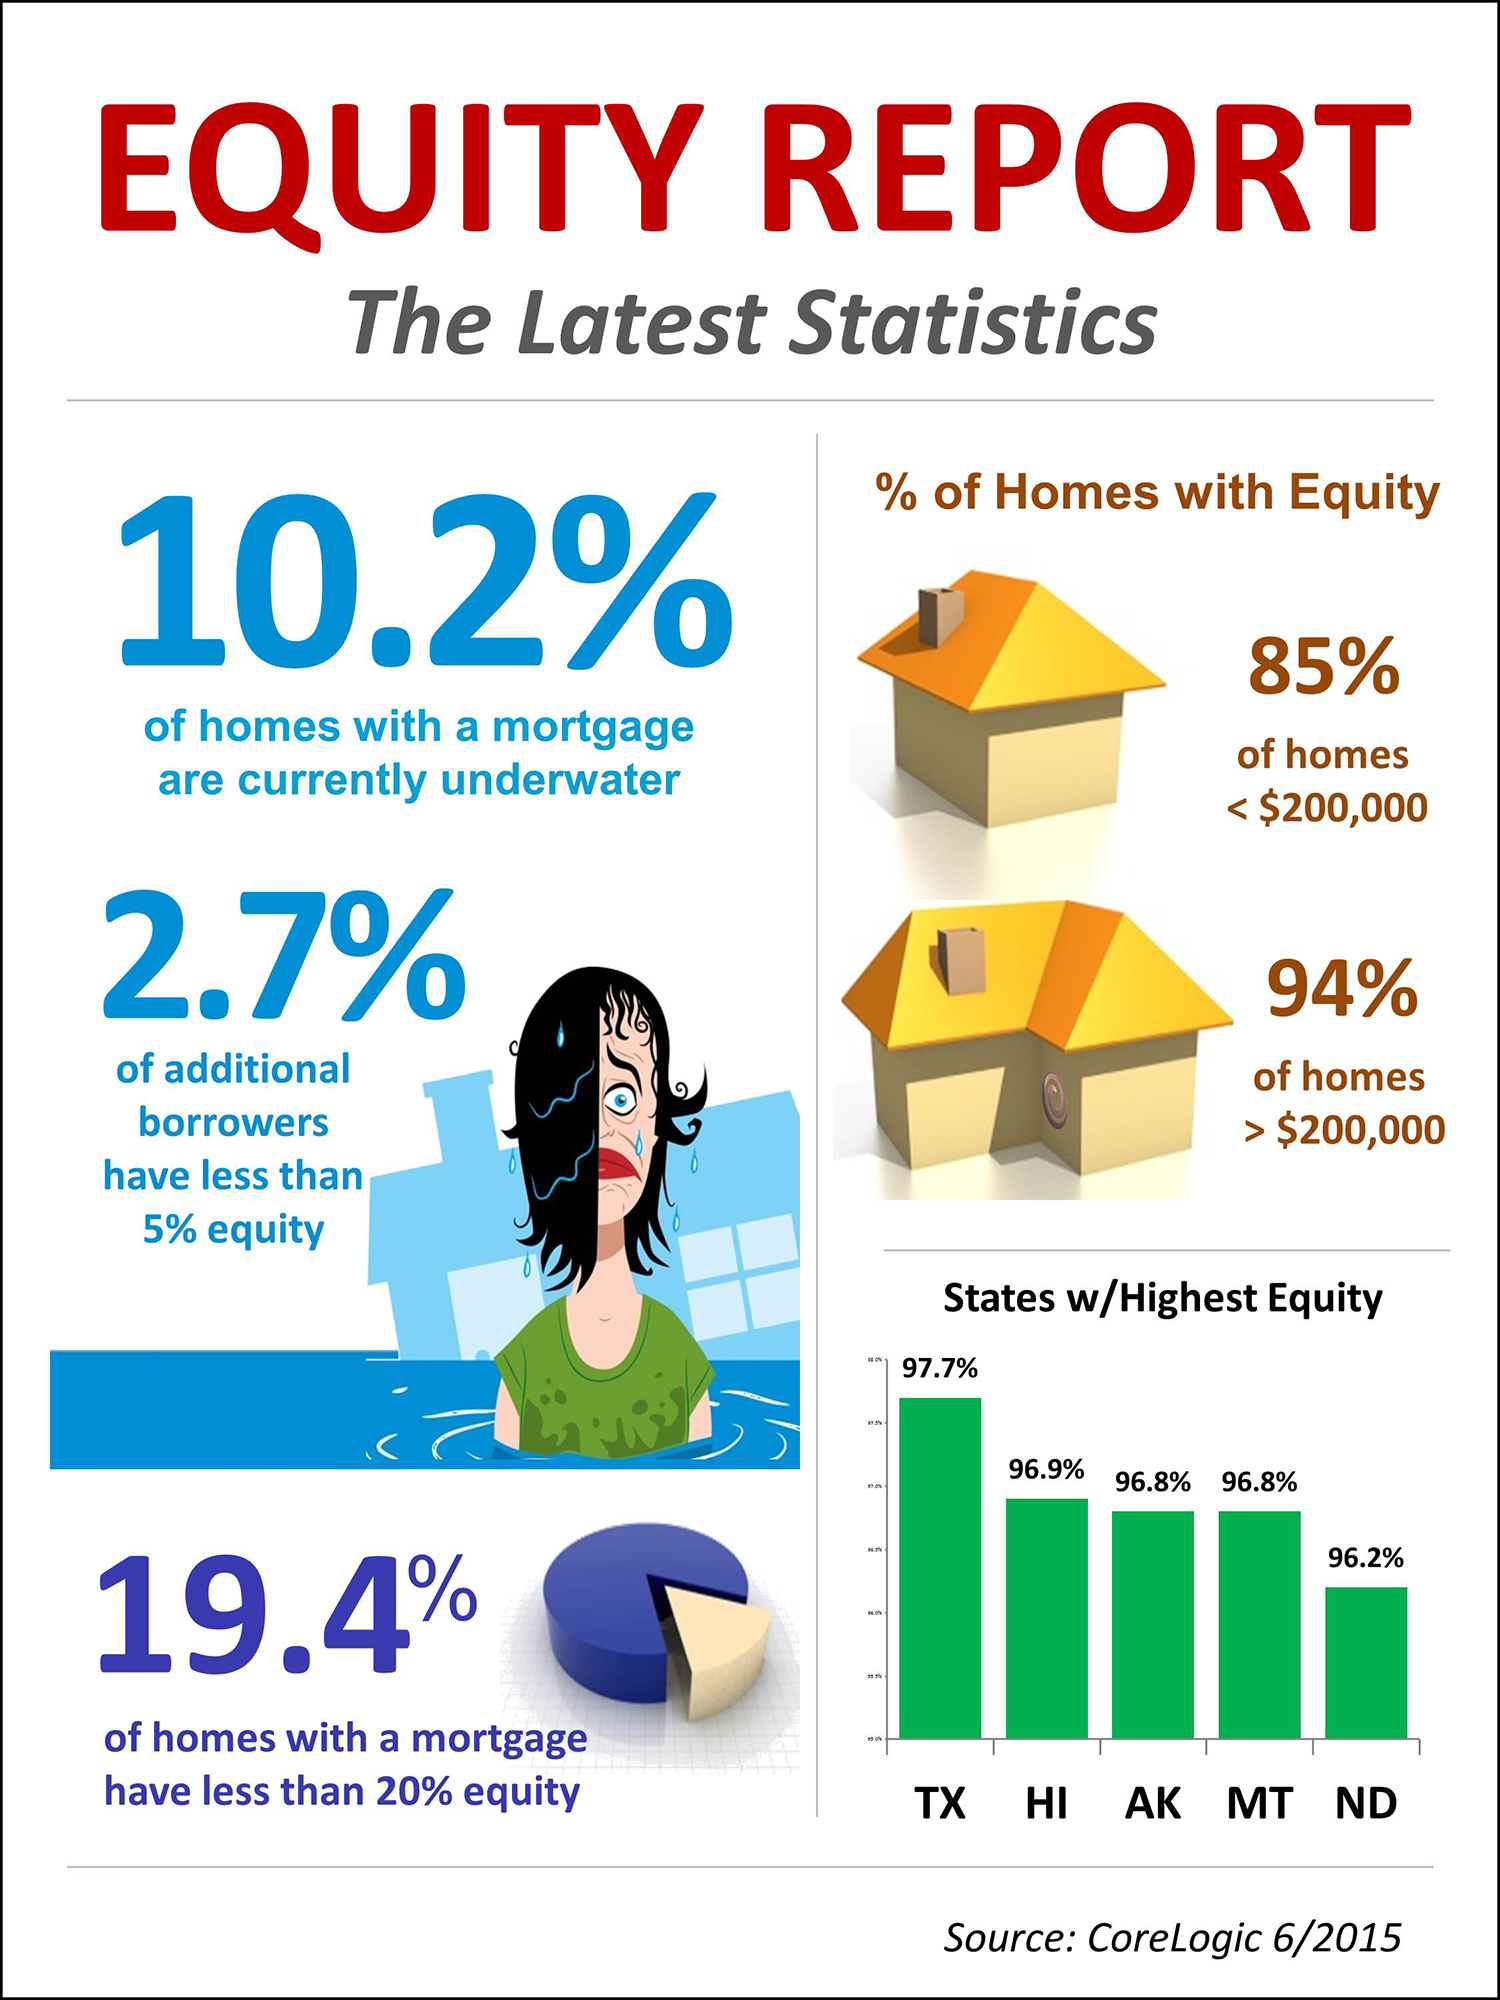 Equity Report [INFOGRAPHIC] | Simplifying The Market